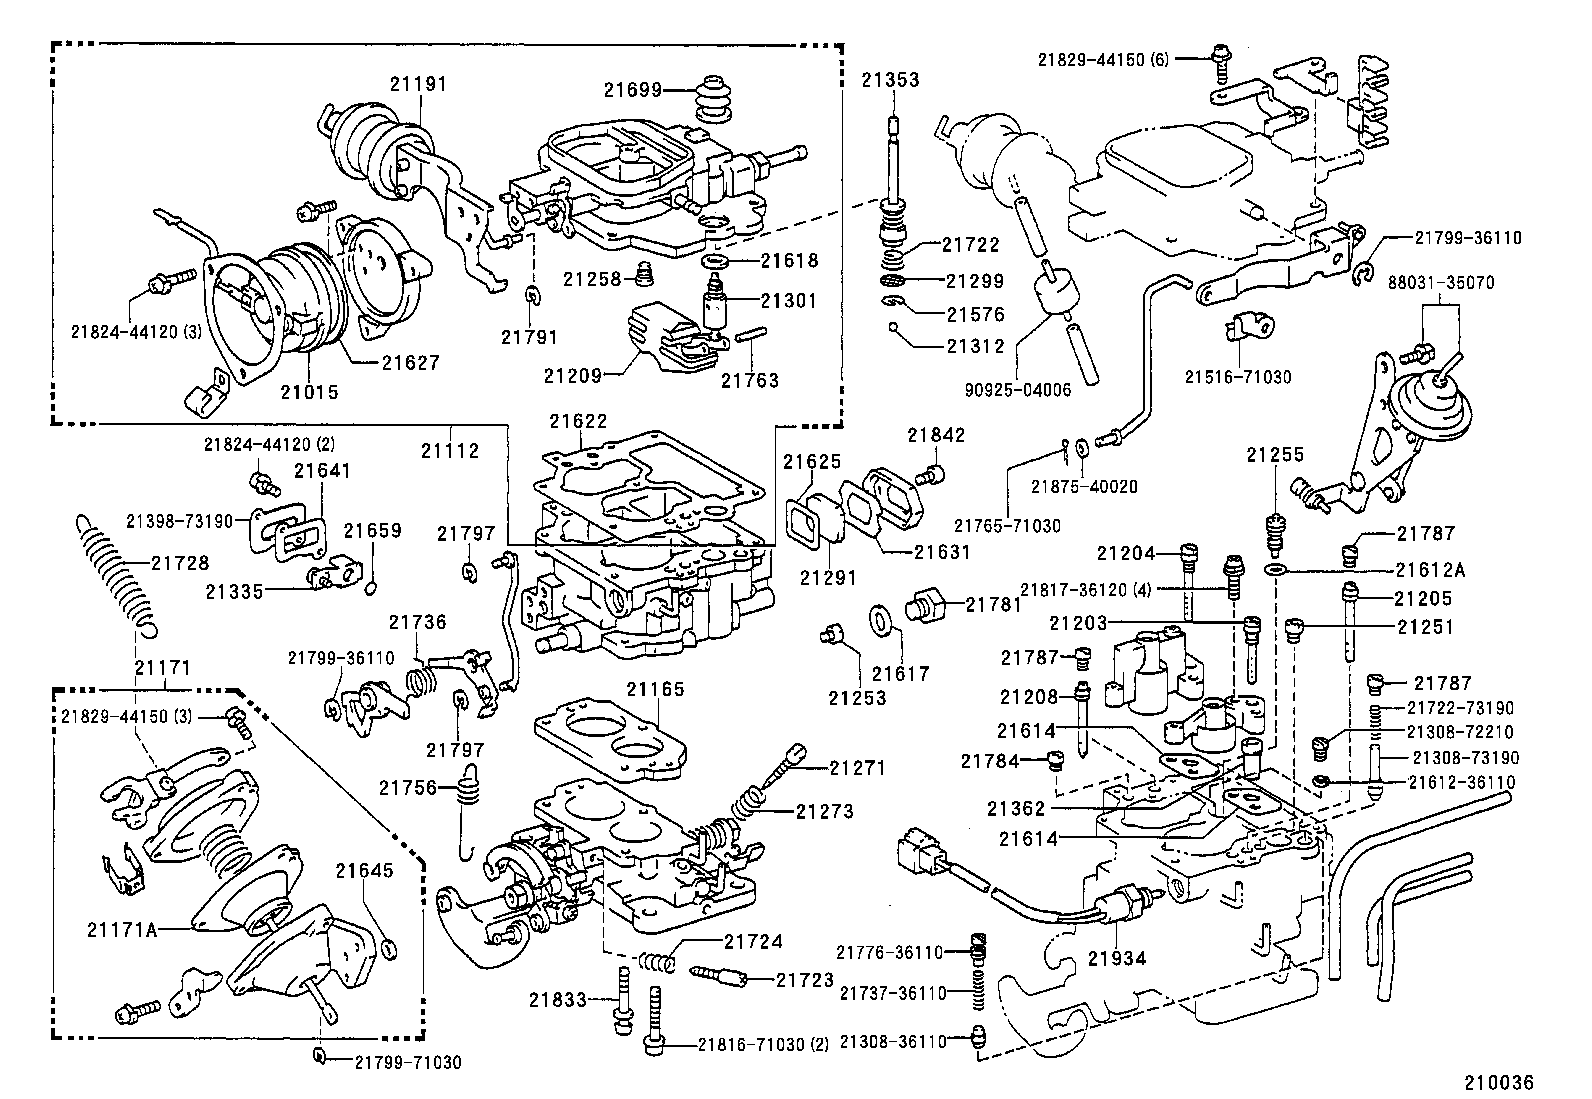 1989 Toyota Camry Parts Diagrams